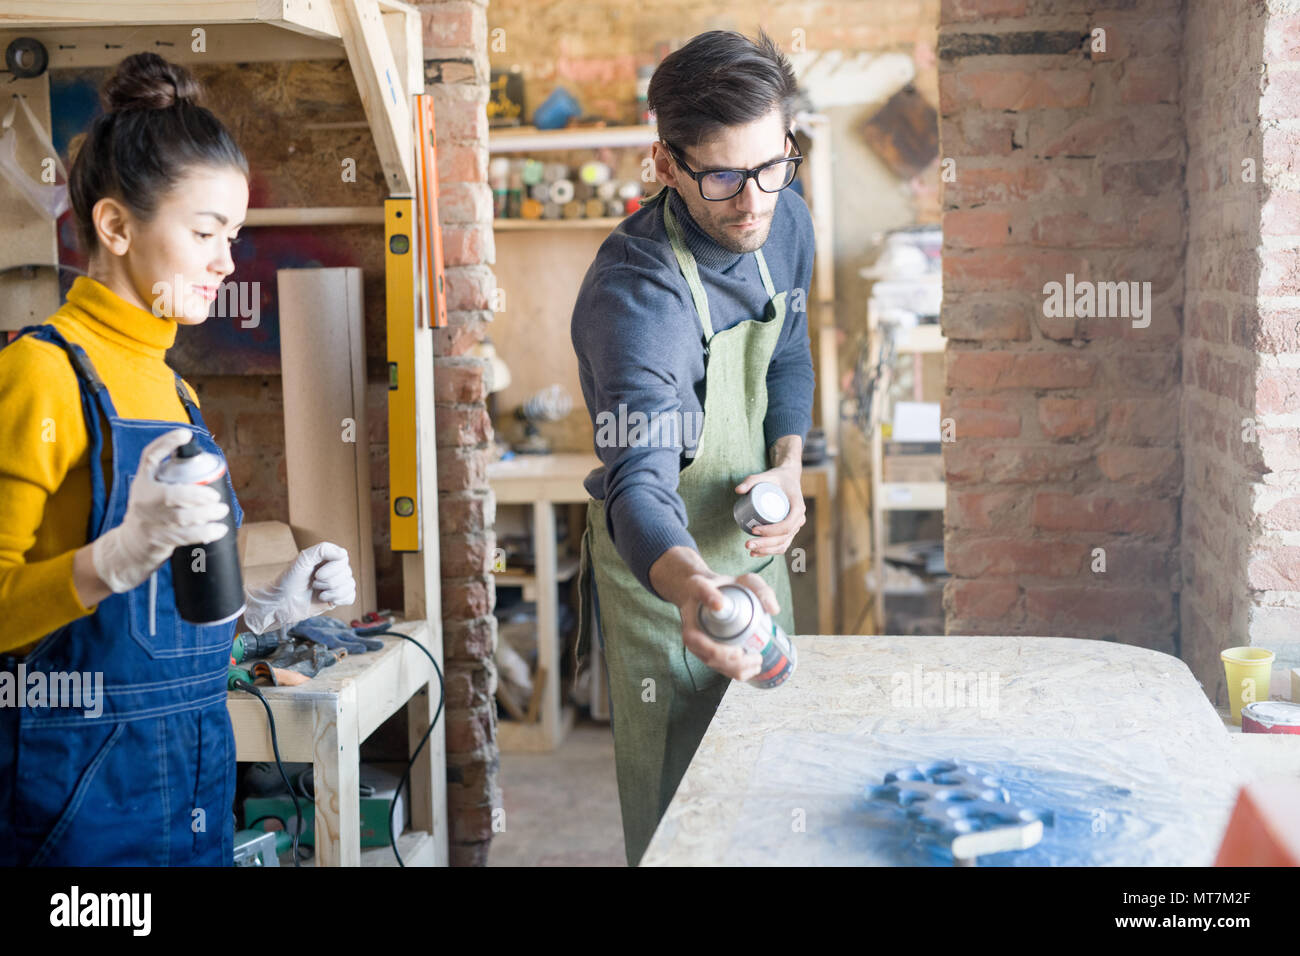 Two Artists Spray Painting Wood - Stock Image